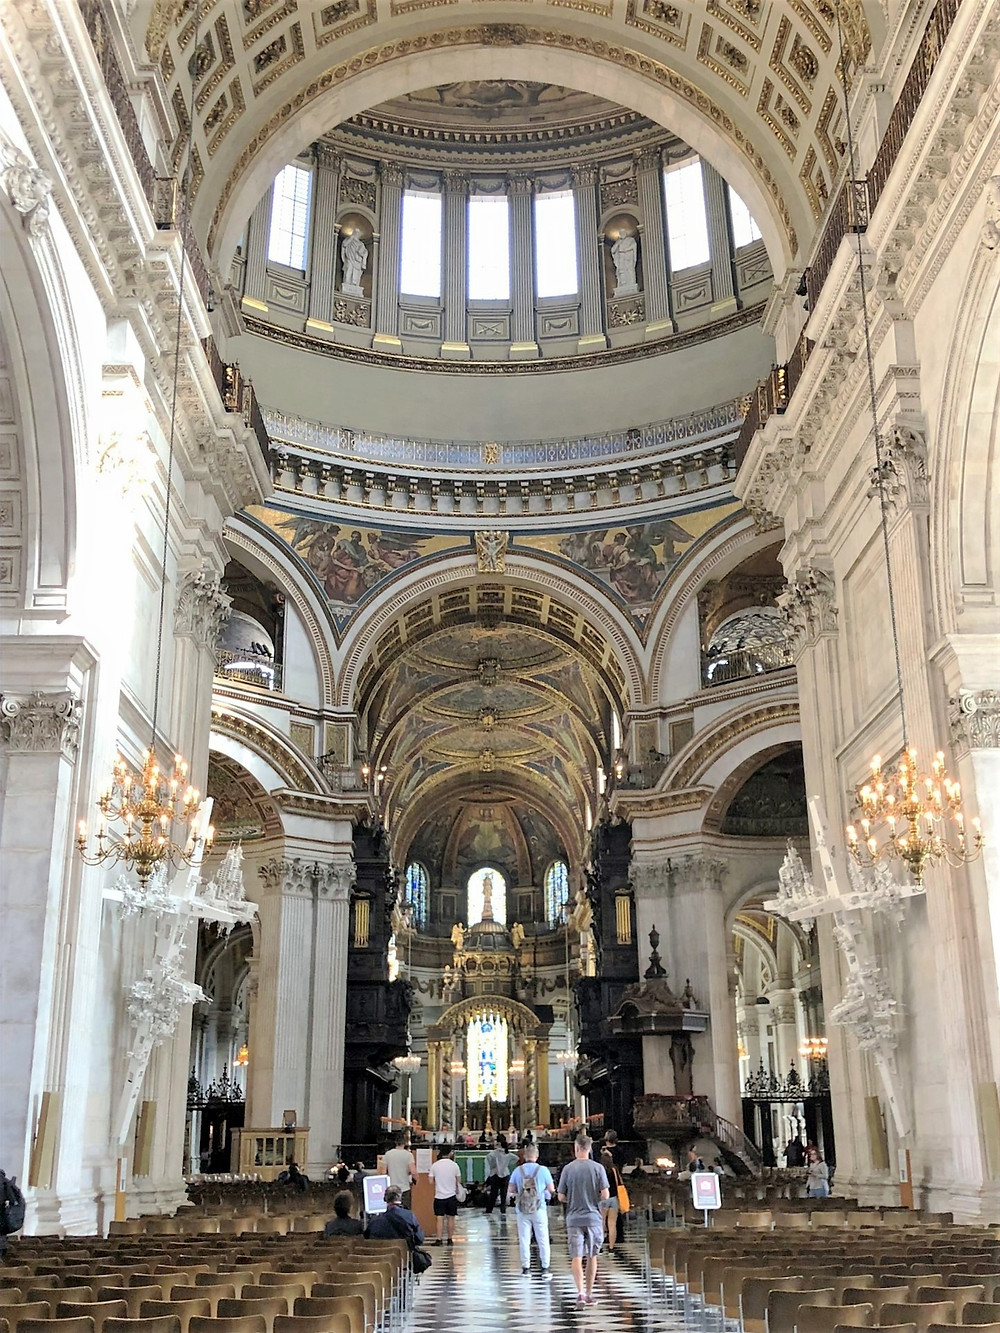 In St Paul's Cathedral in London.  The nave looking toward the quire. The nave is 91 ft high, 121 ft wide and 223 ft in length.